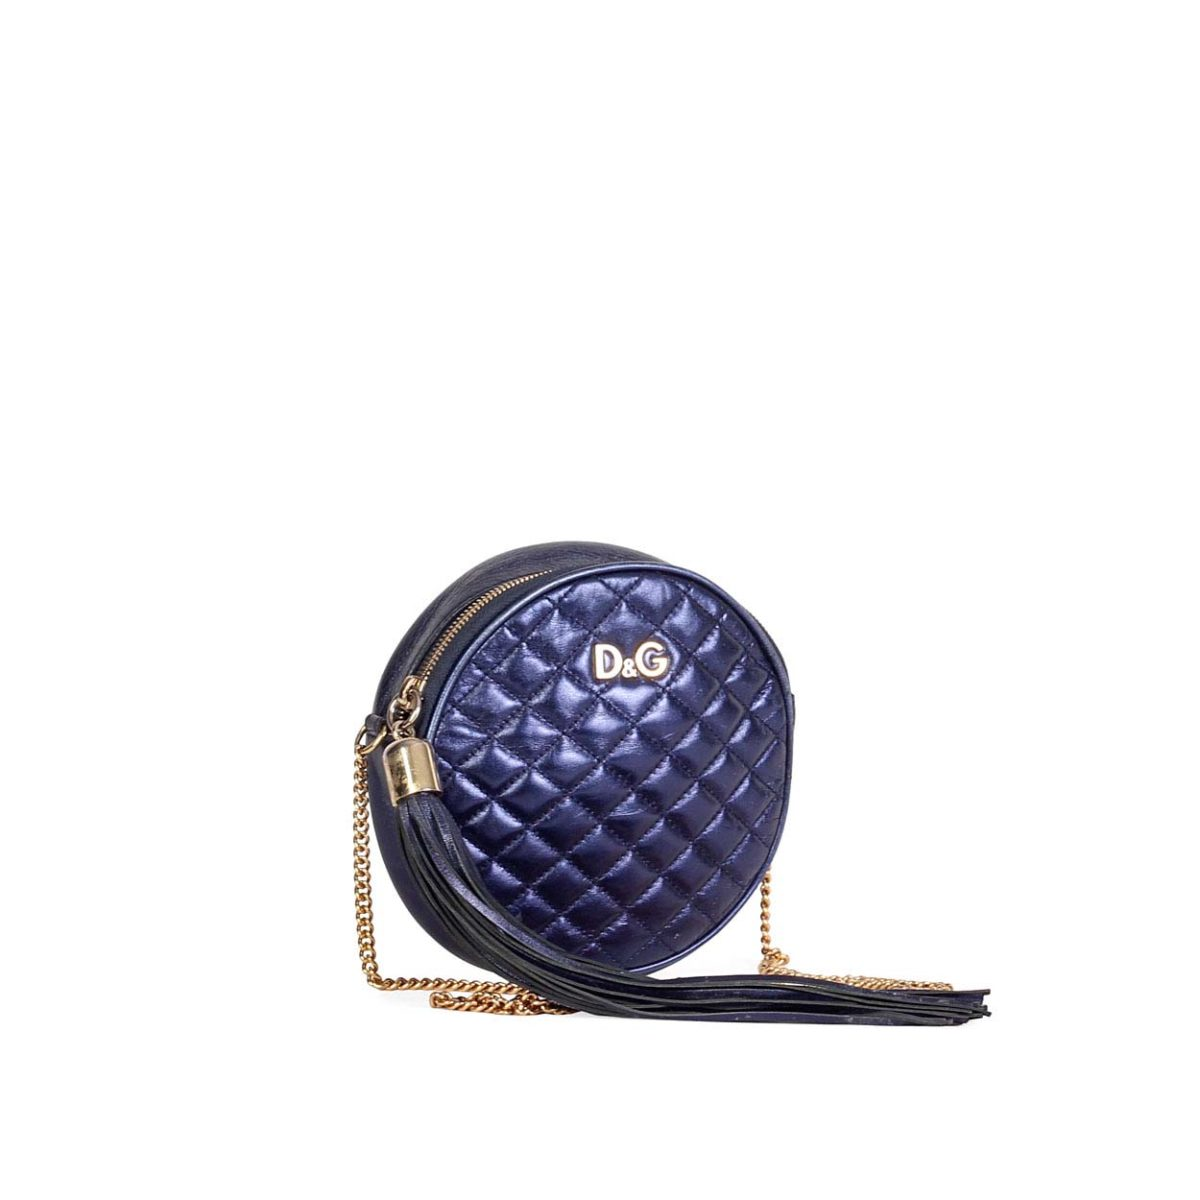 D G Lily Glam Round Quilted Cross-Body bag  334c529c2f6e8